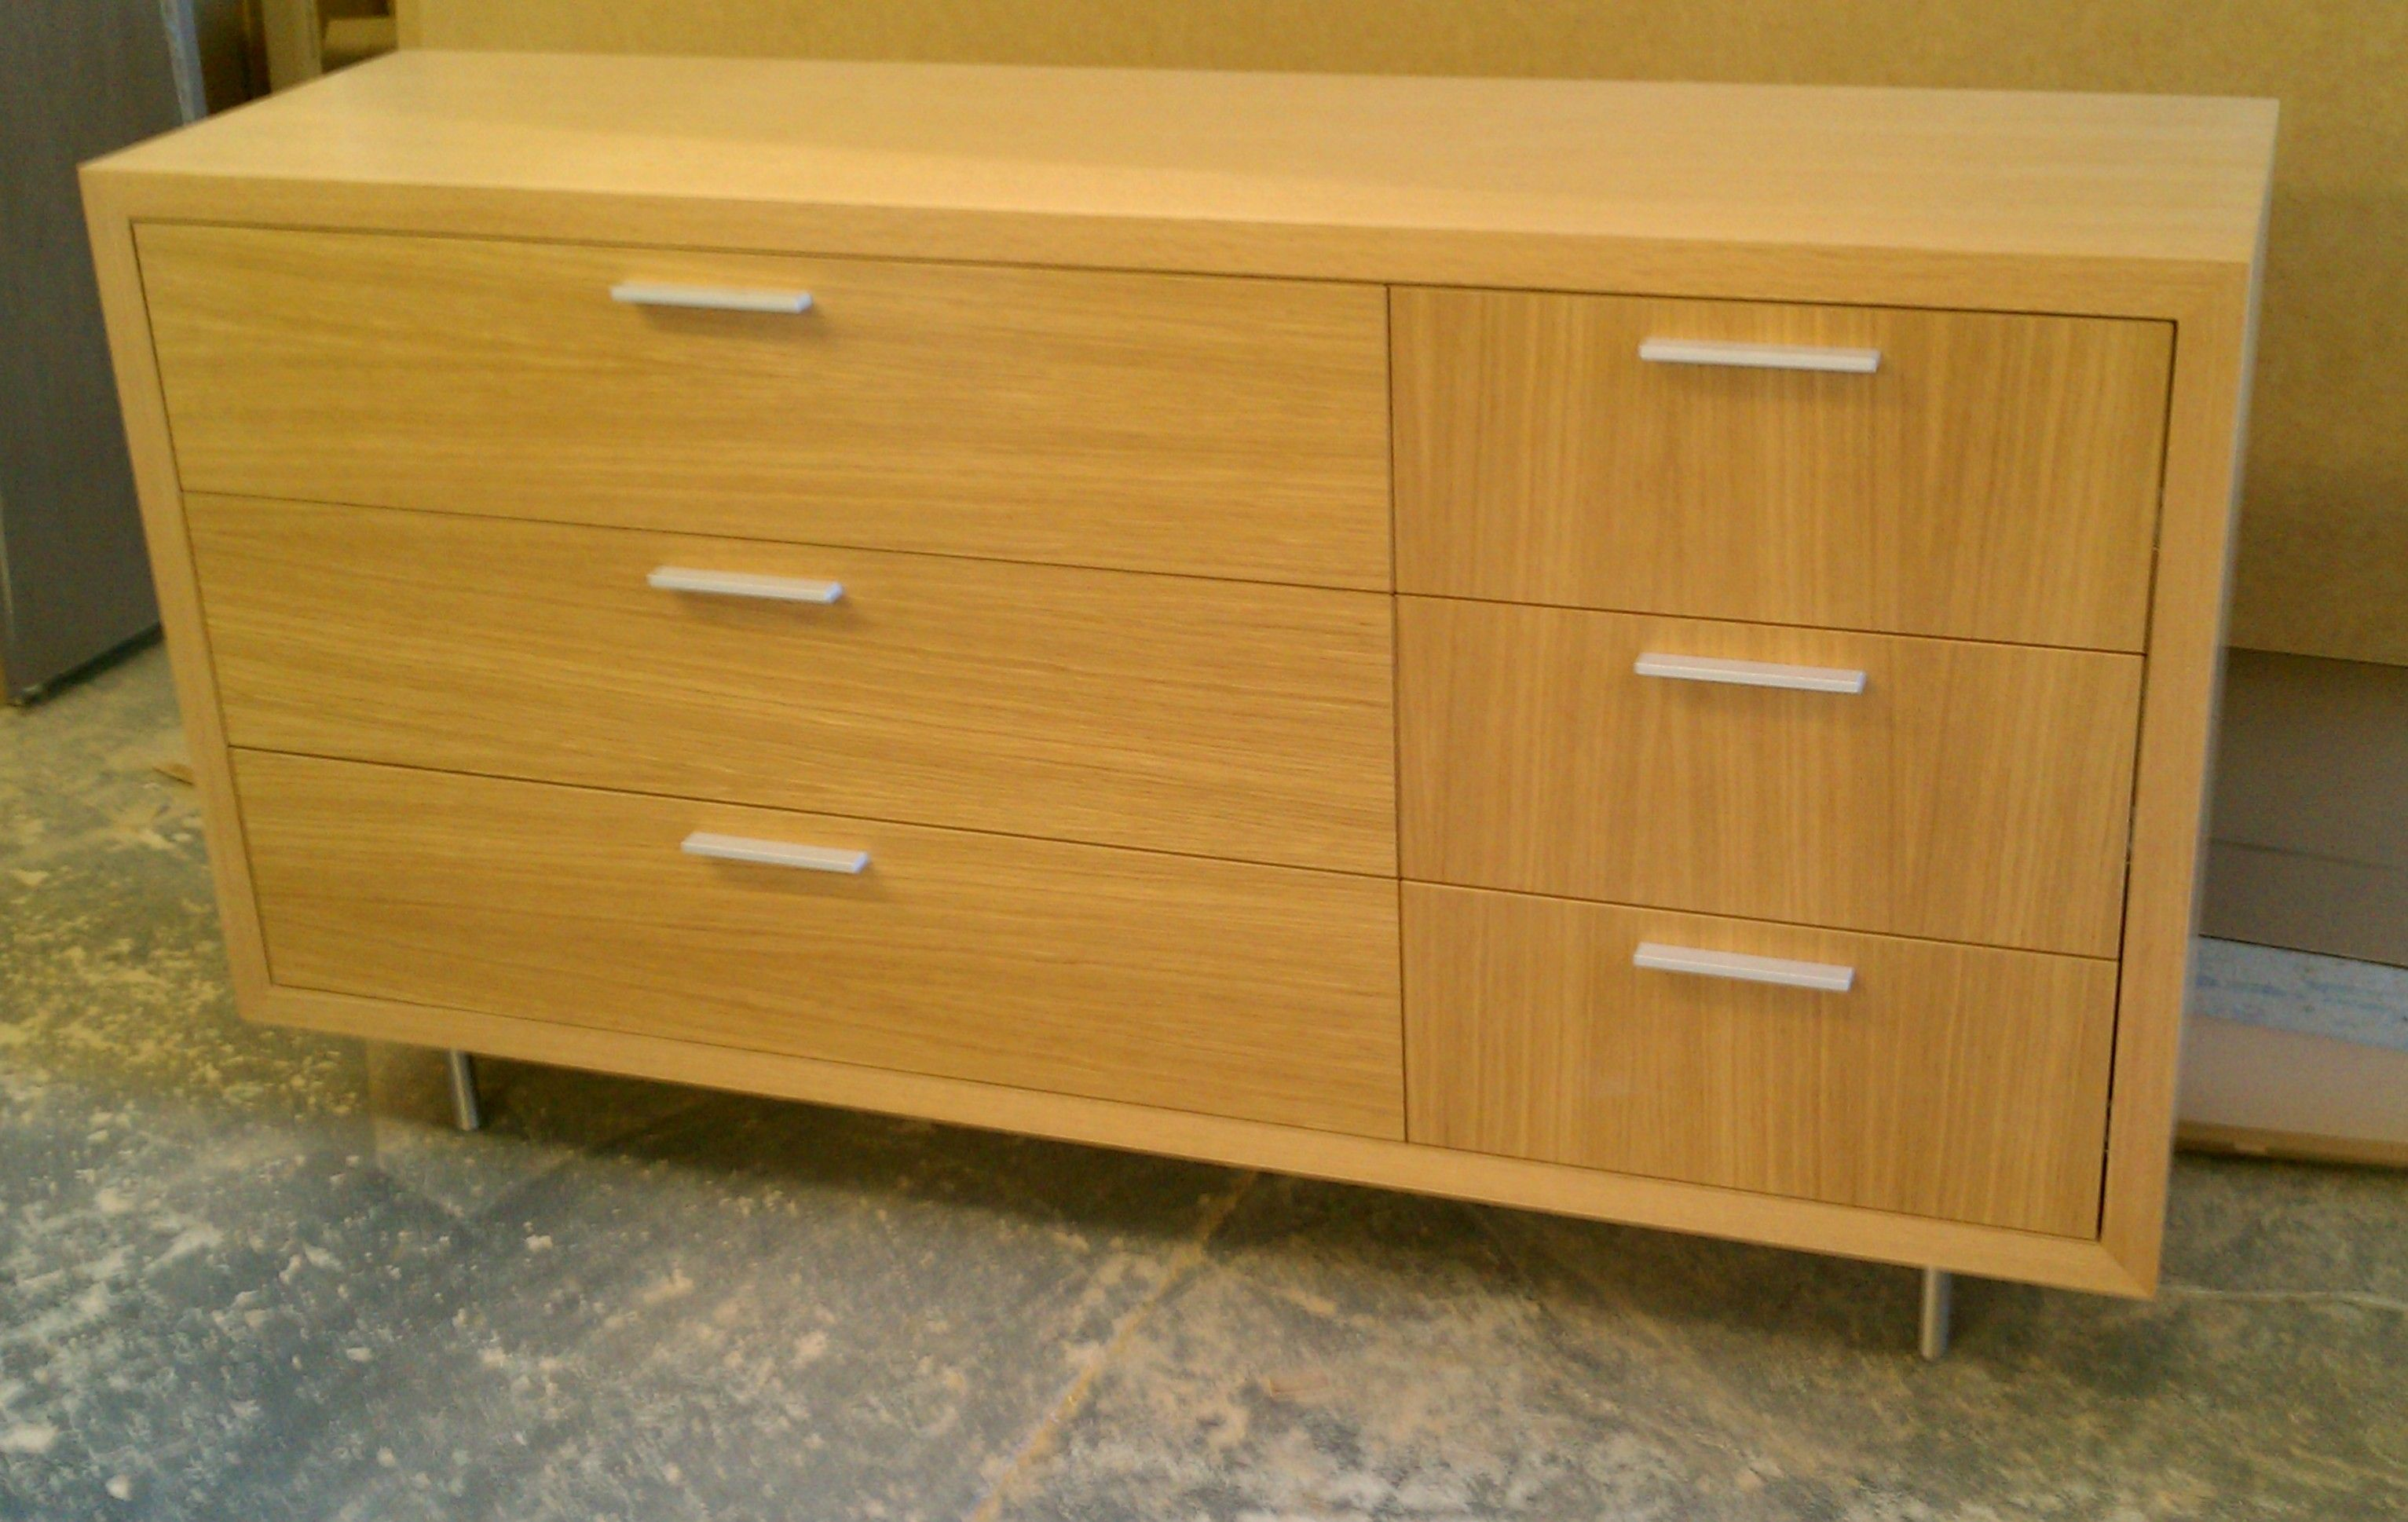 Clermont #Credenza #Media Cabinet In Rift White Oak Veneer With Cross